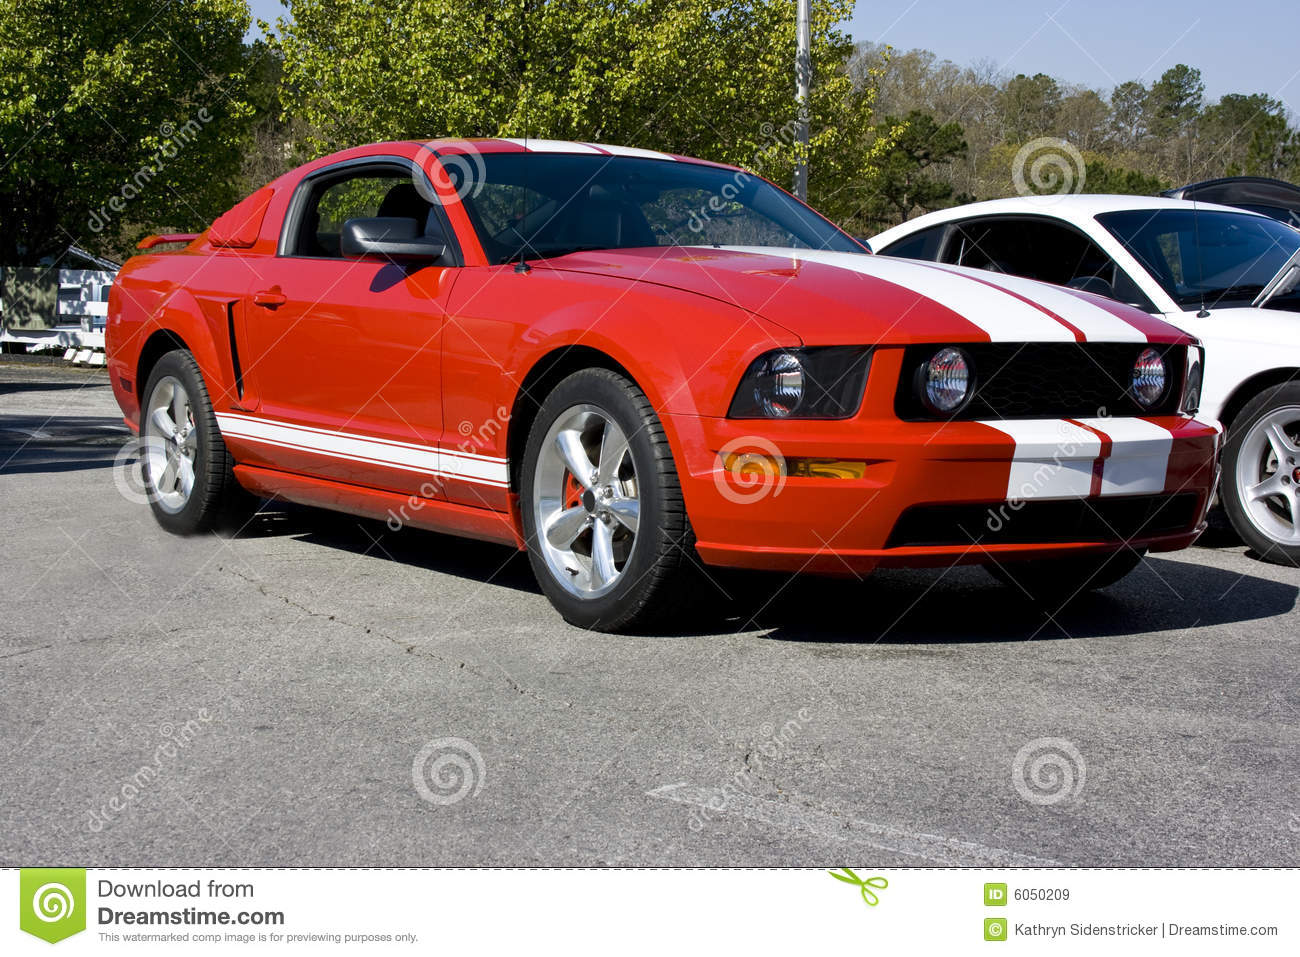 2008 ford gt mustang red